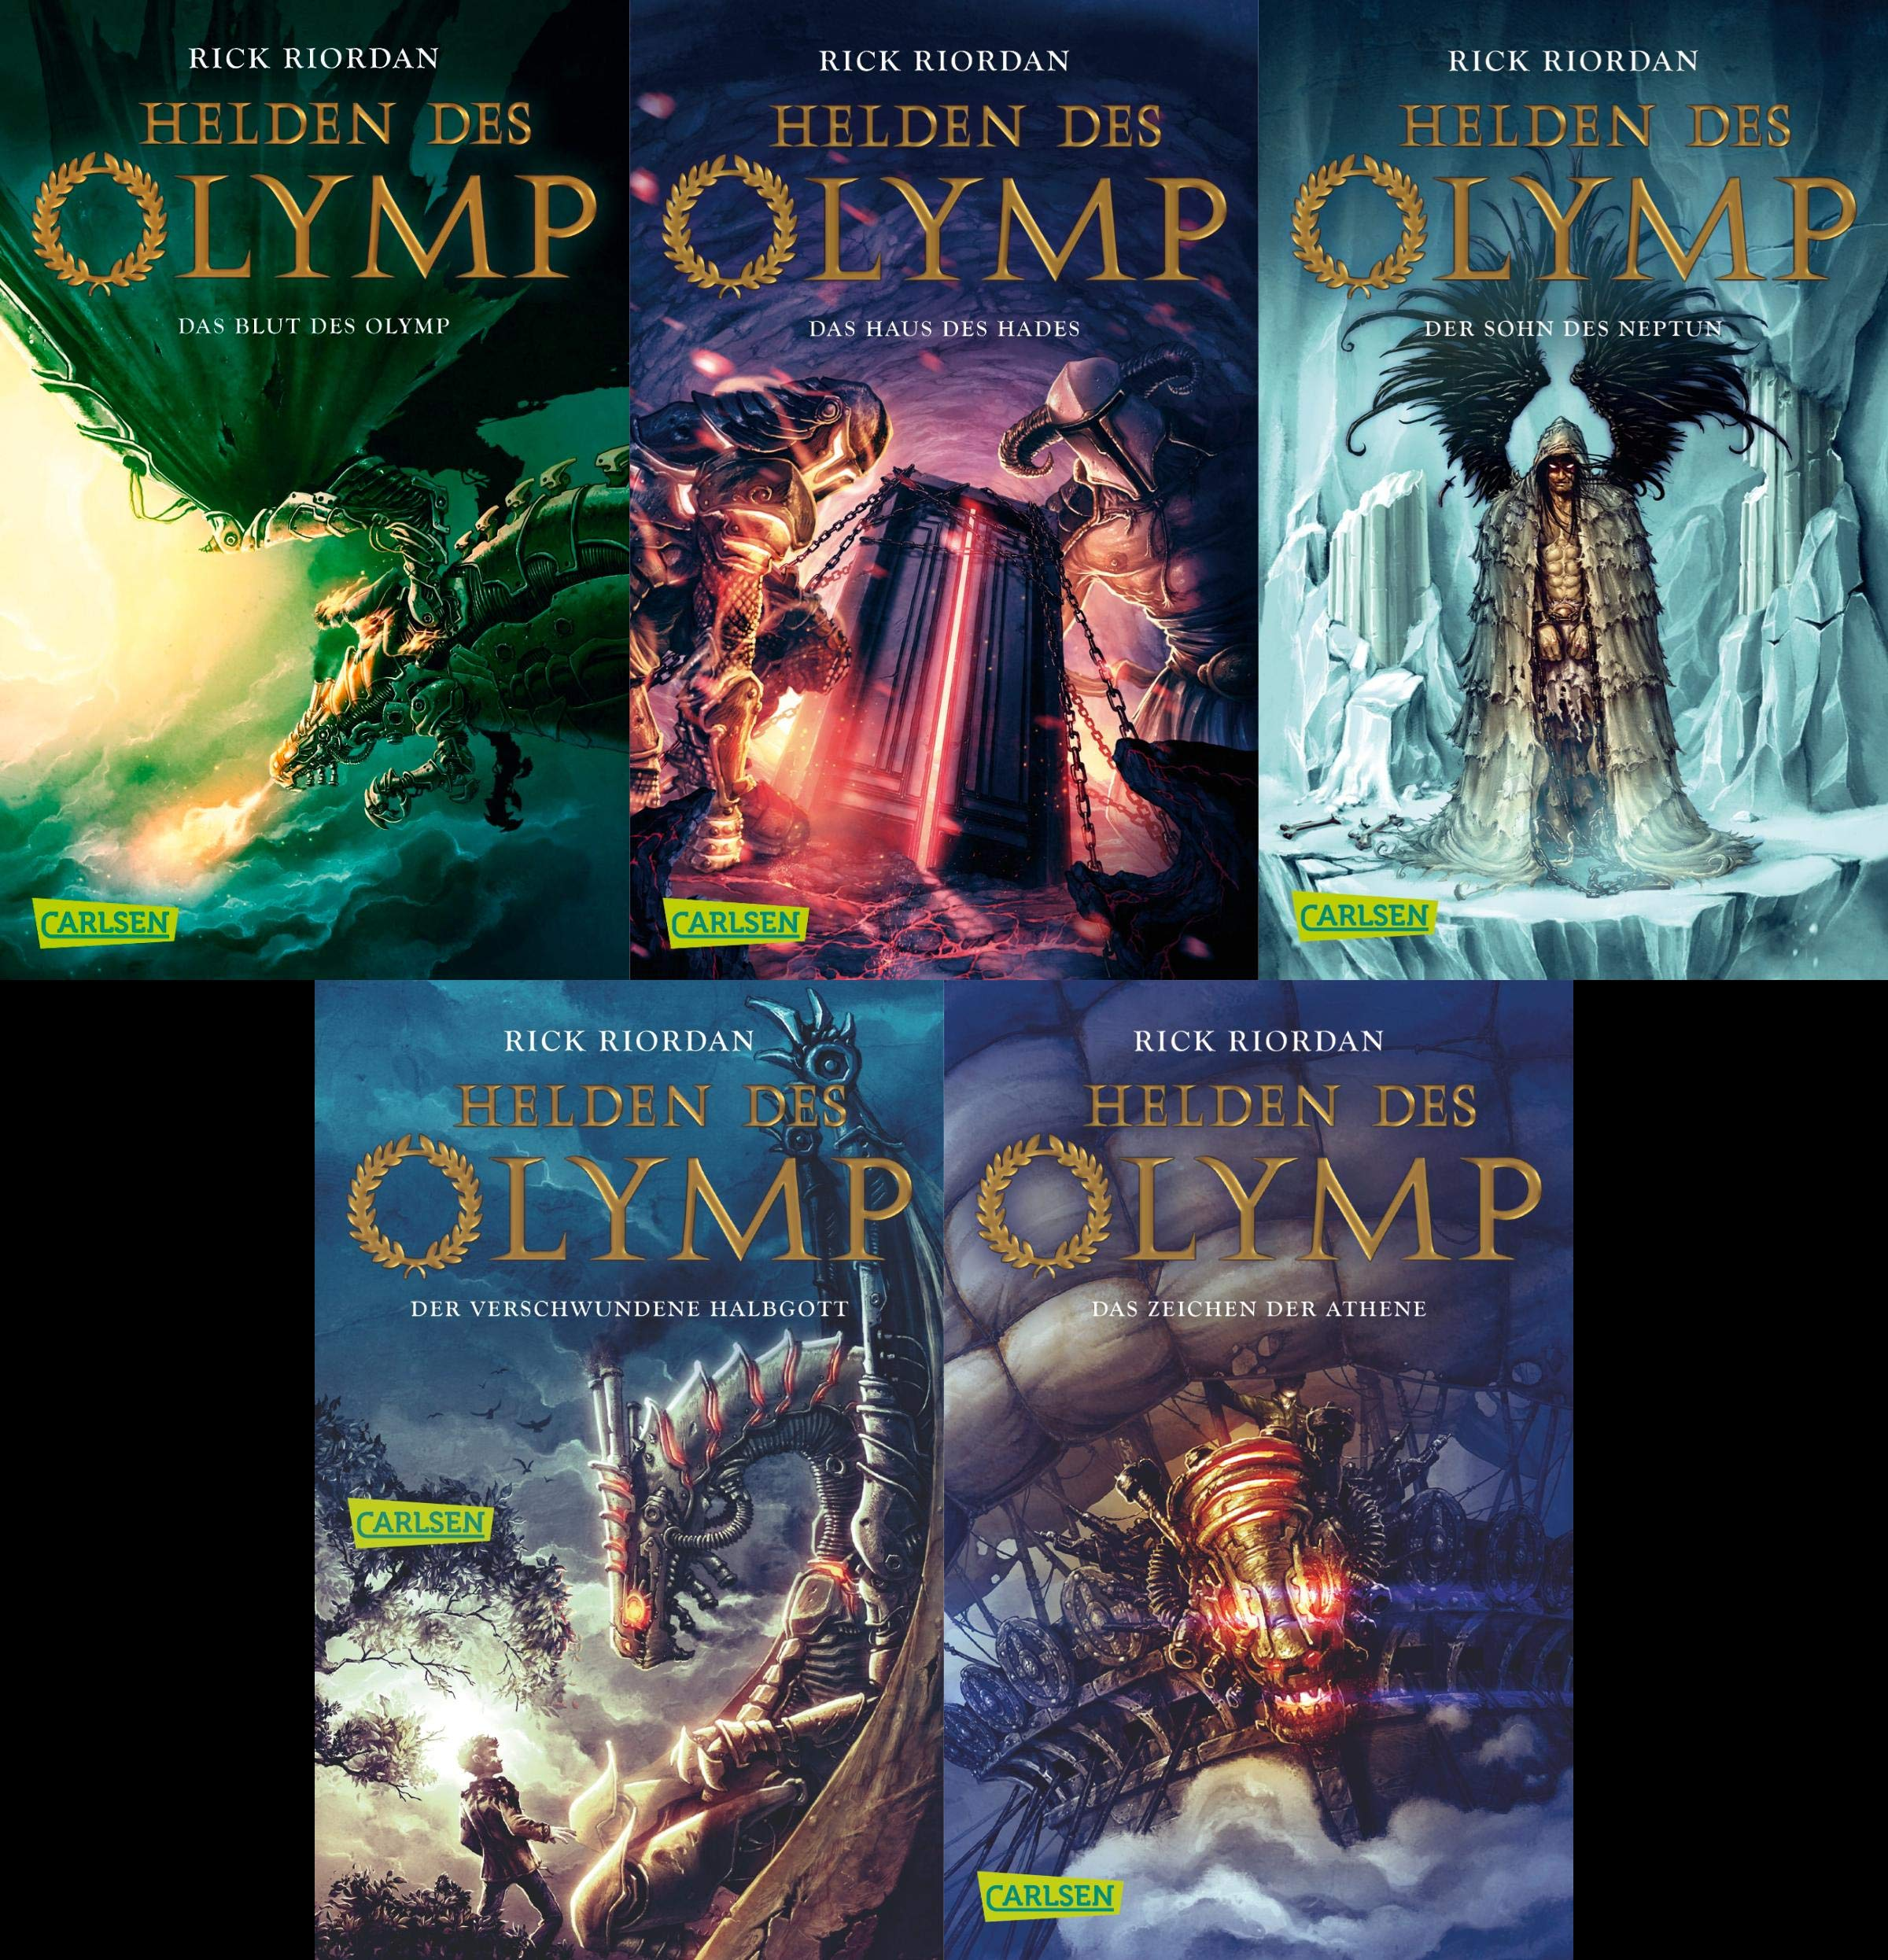 By Rick Riordan Percy Jackson and the Olympians 5 Book Paperback Boxed Set  New Covers W/Poster Percy Jackson & th Box Pap/Ps Paperback: Amazon.es:  Rick ...